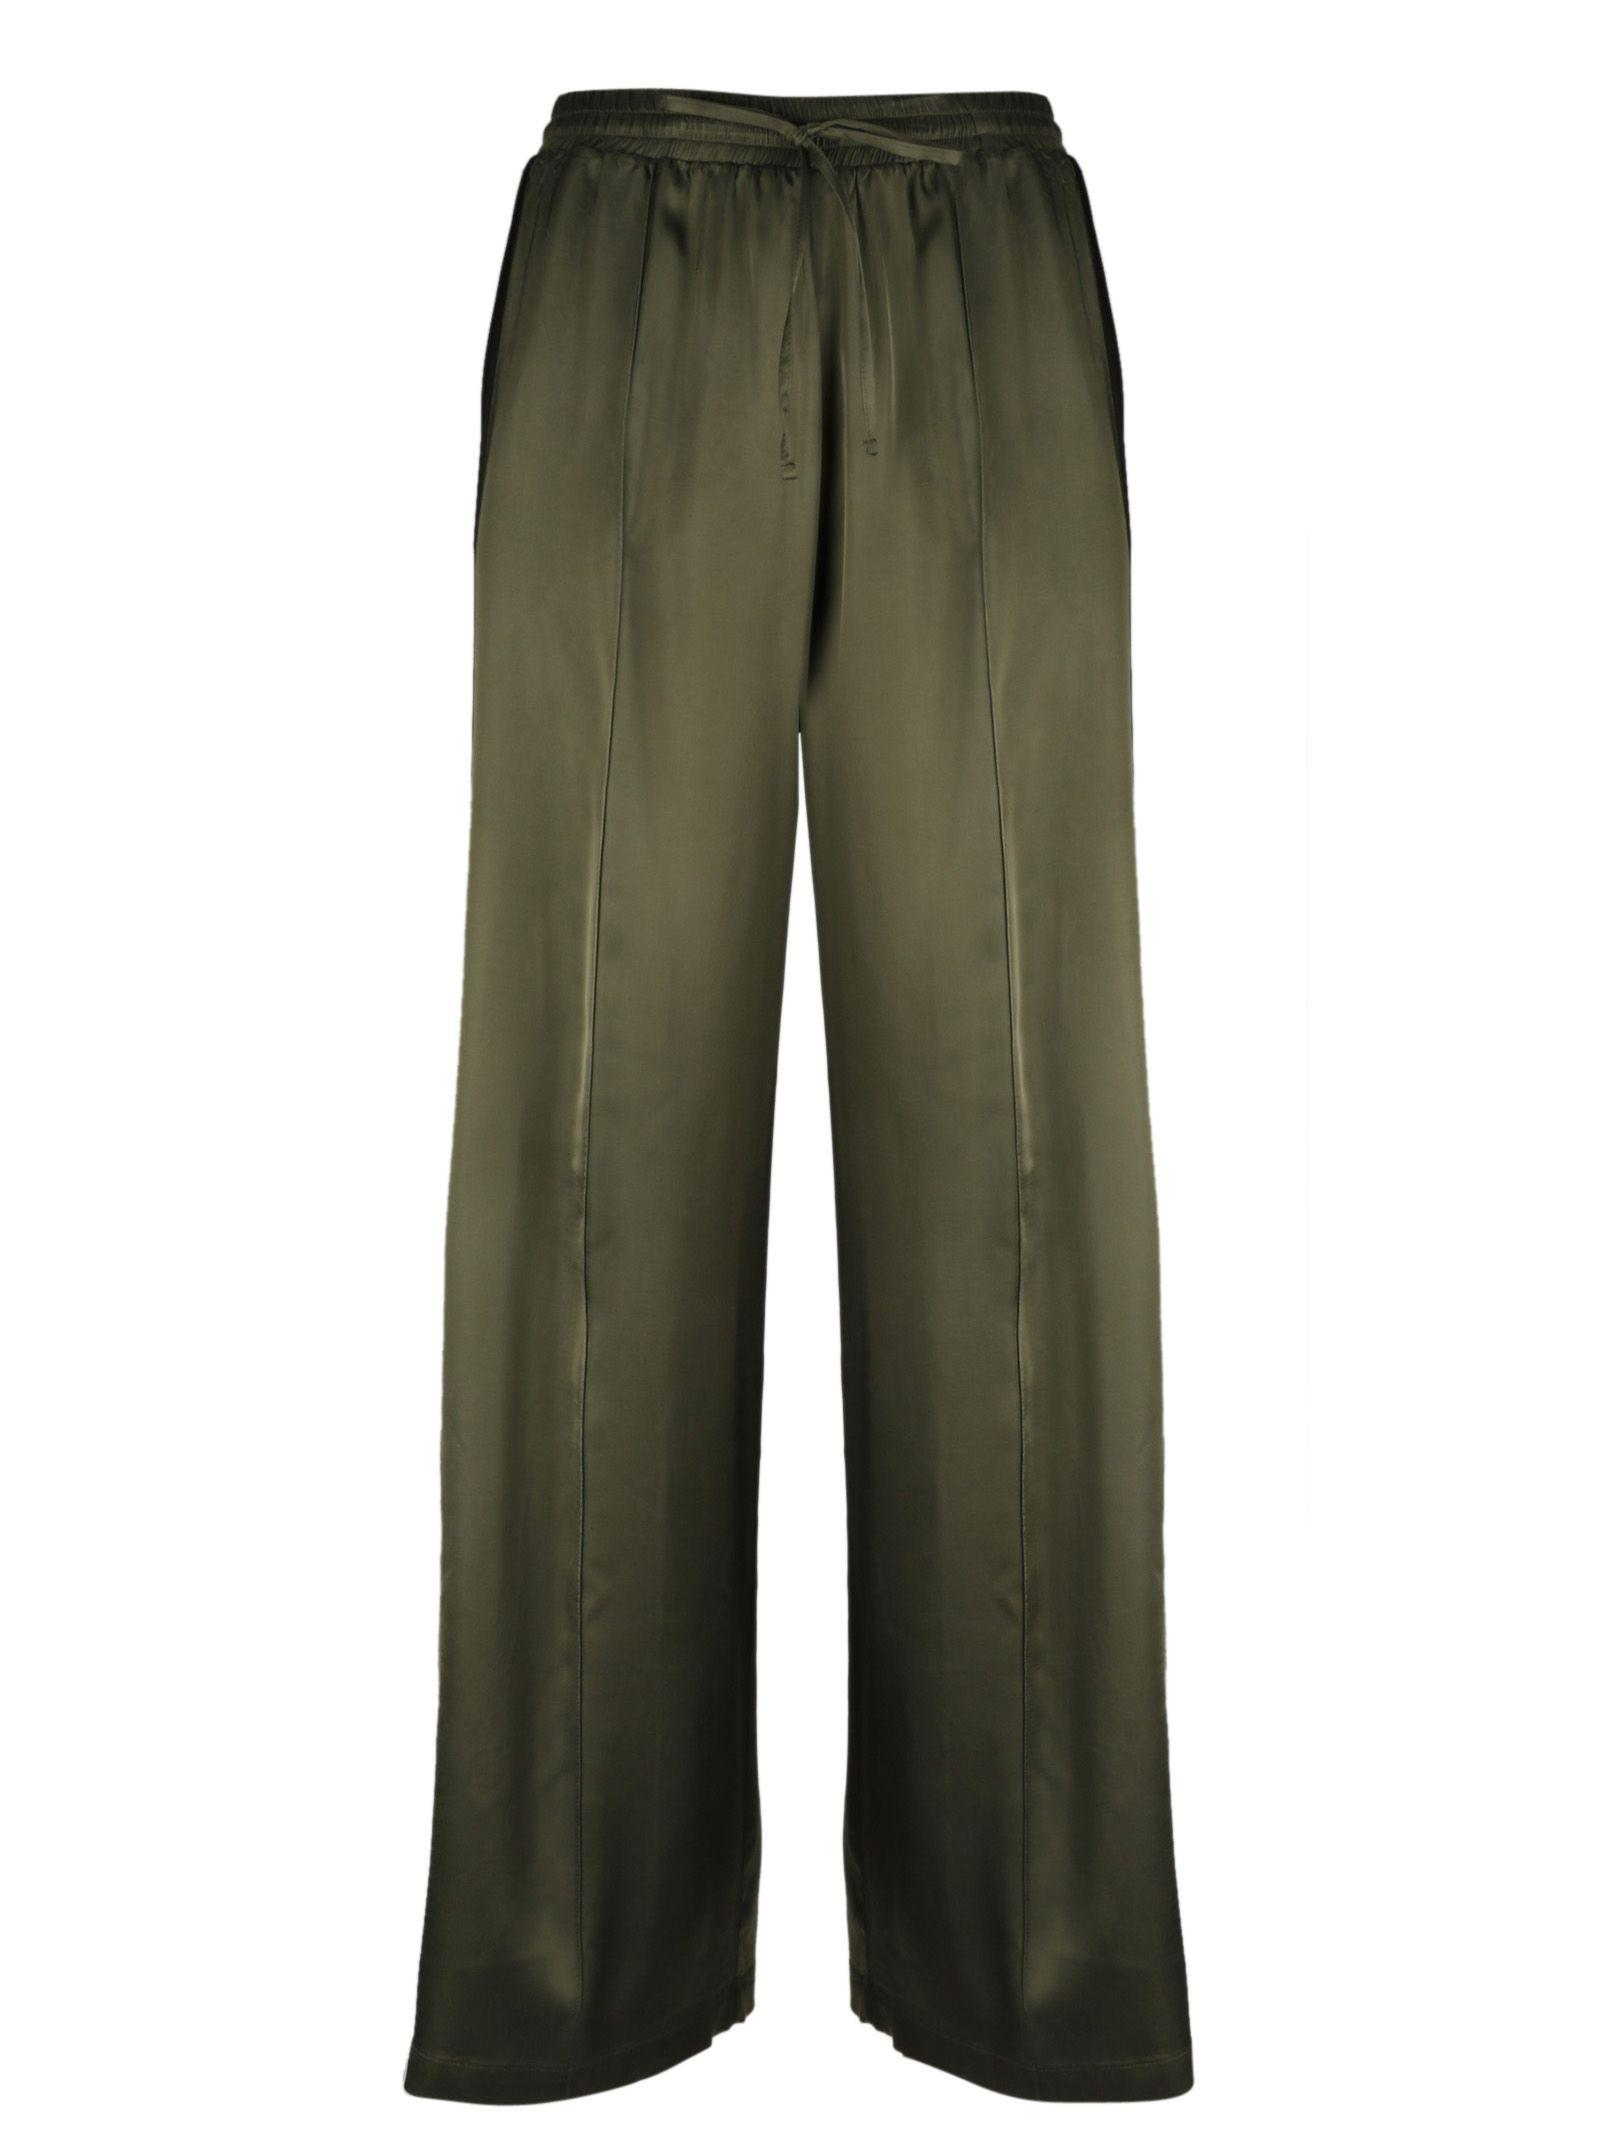 Semicouture Side Stripe Trousers In Oliva